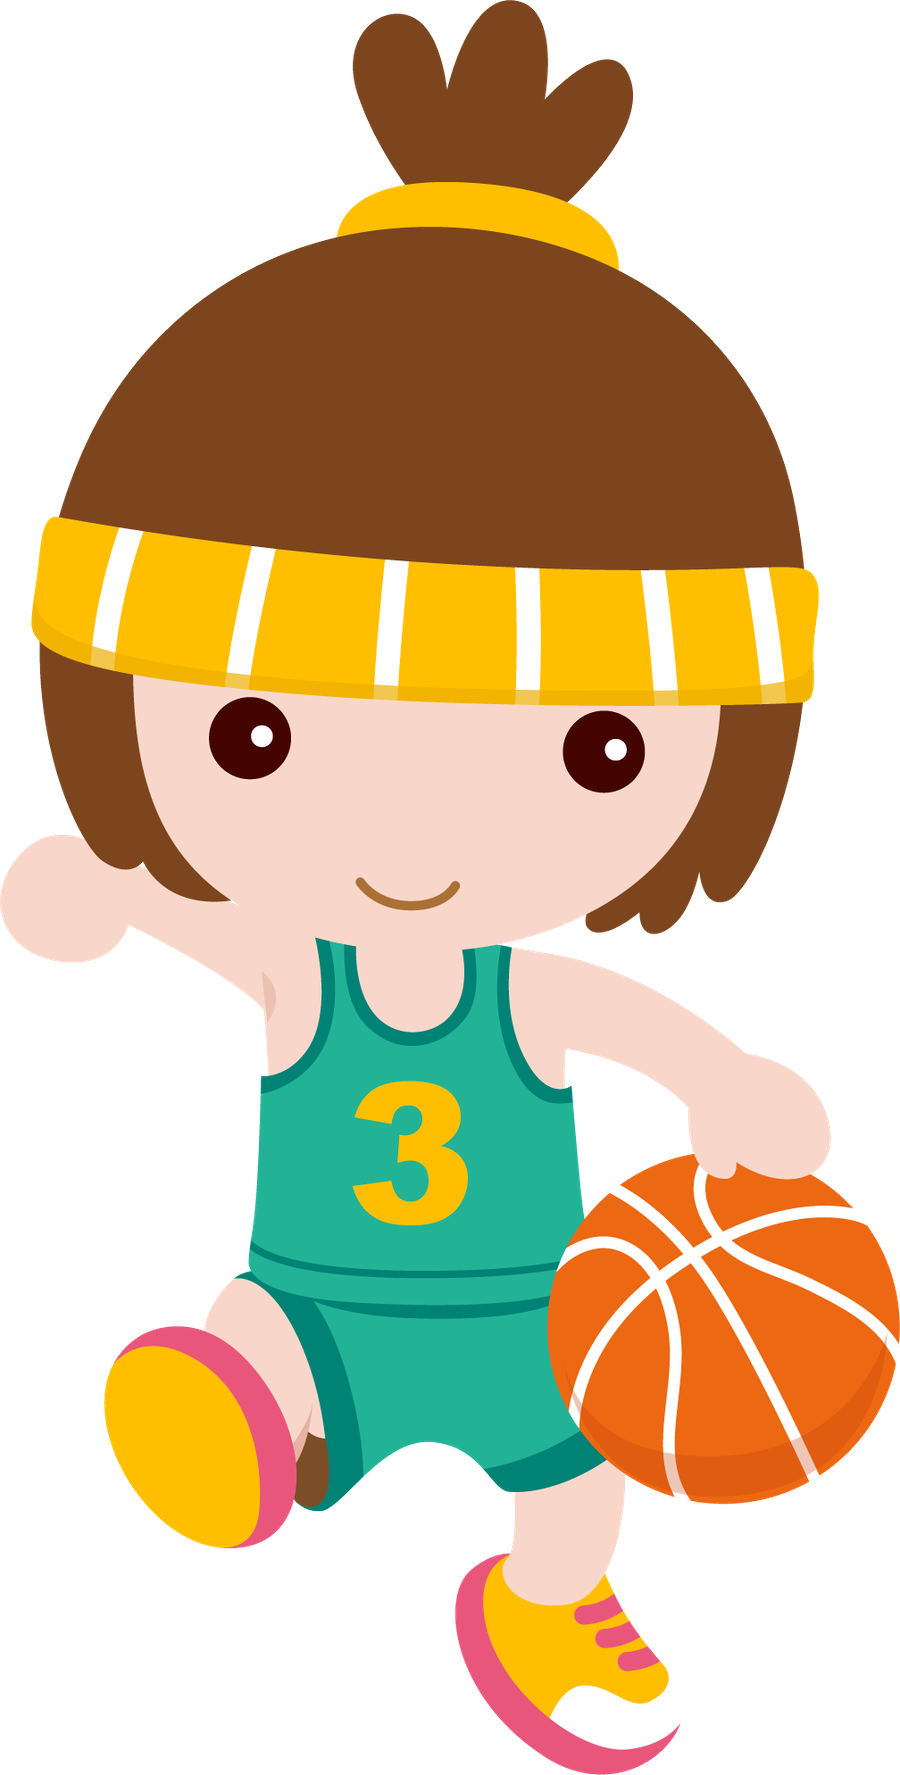 Basketball with a mexican theme clipart clip freeuse Basquete - Minus | alreadyclipart - sports; | Pinterest clip freeuse